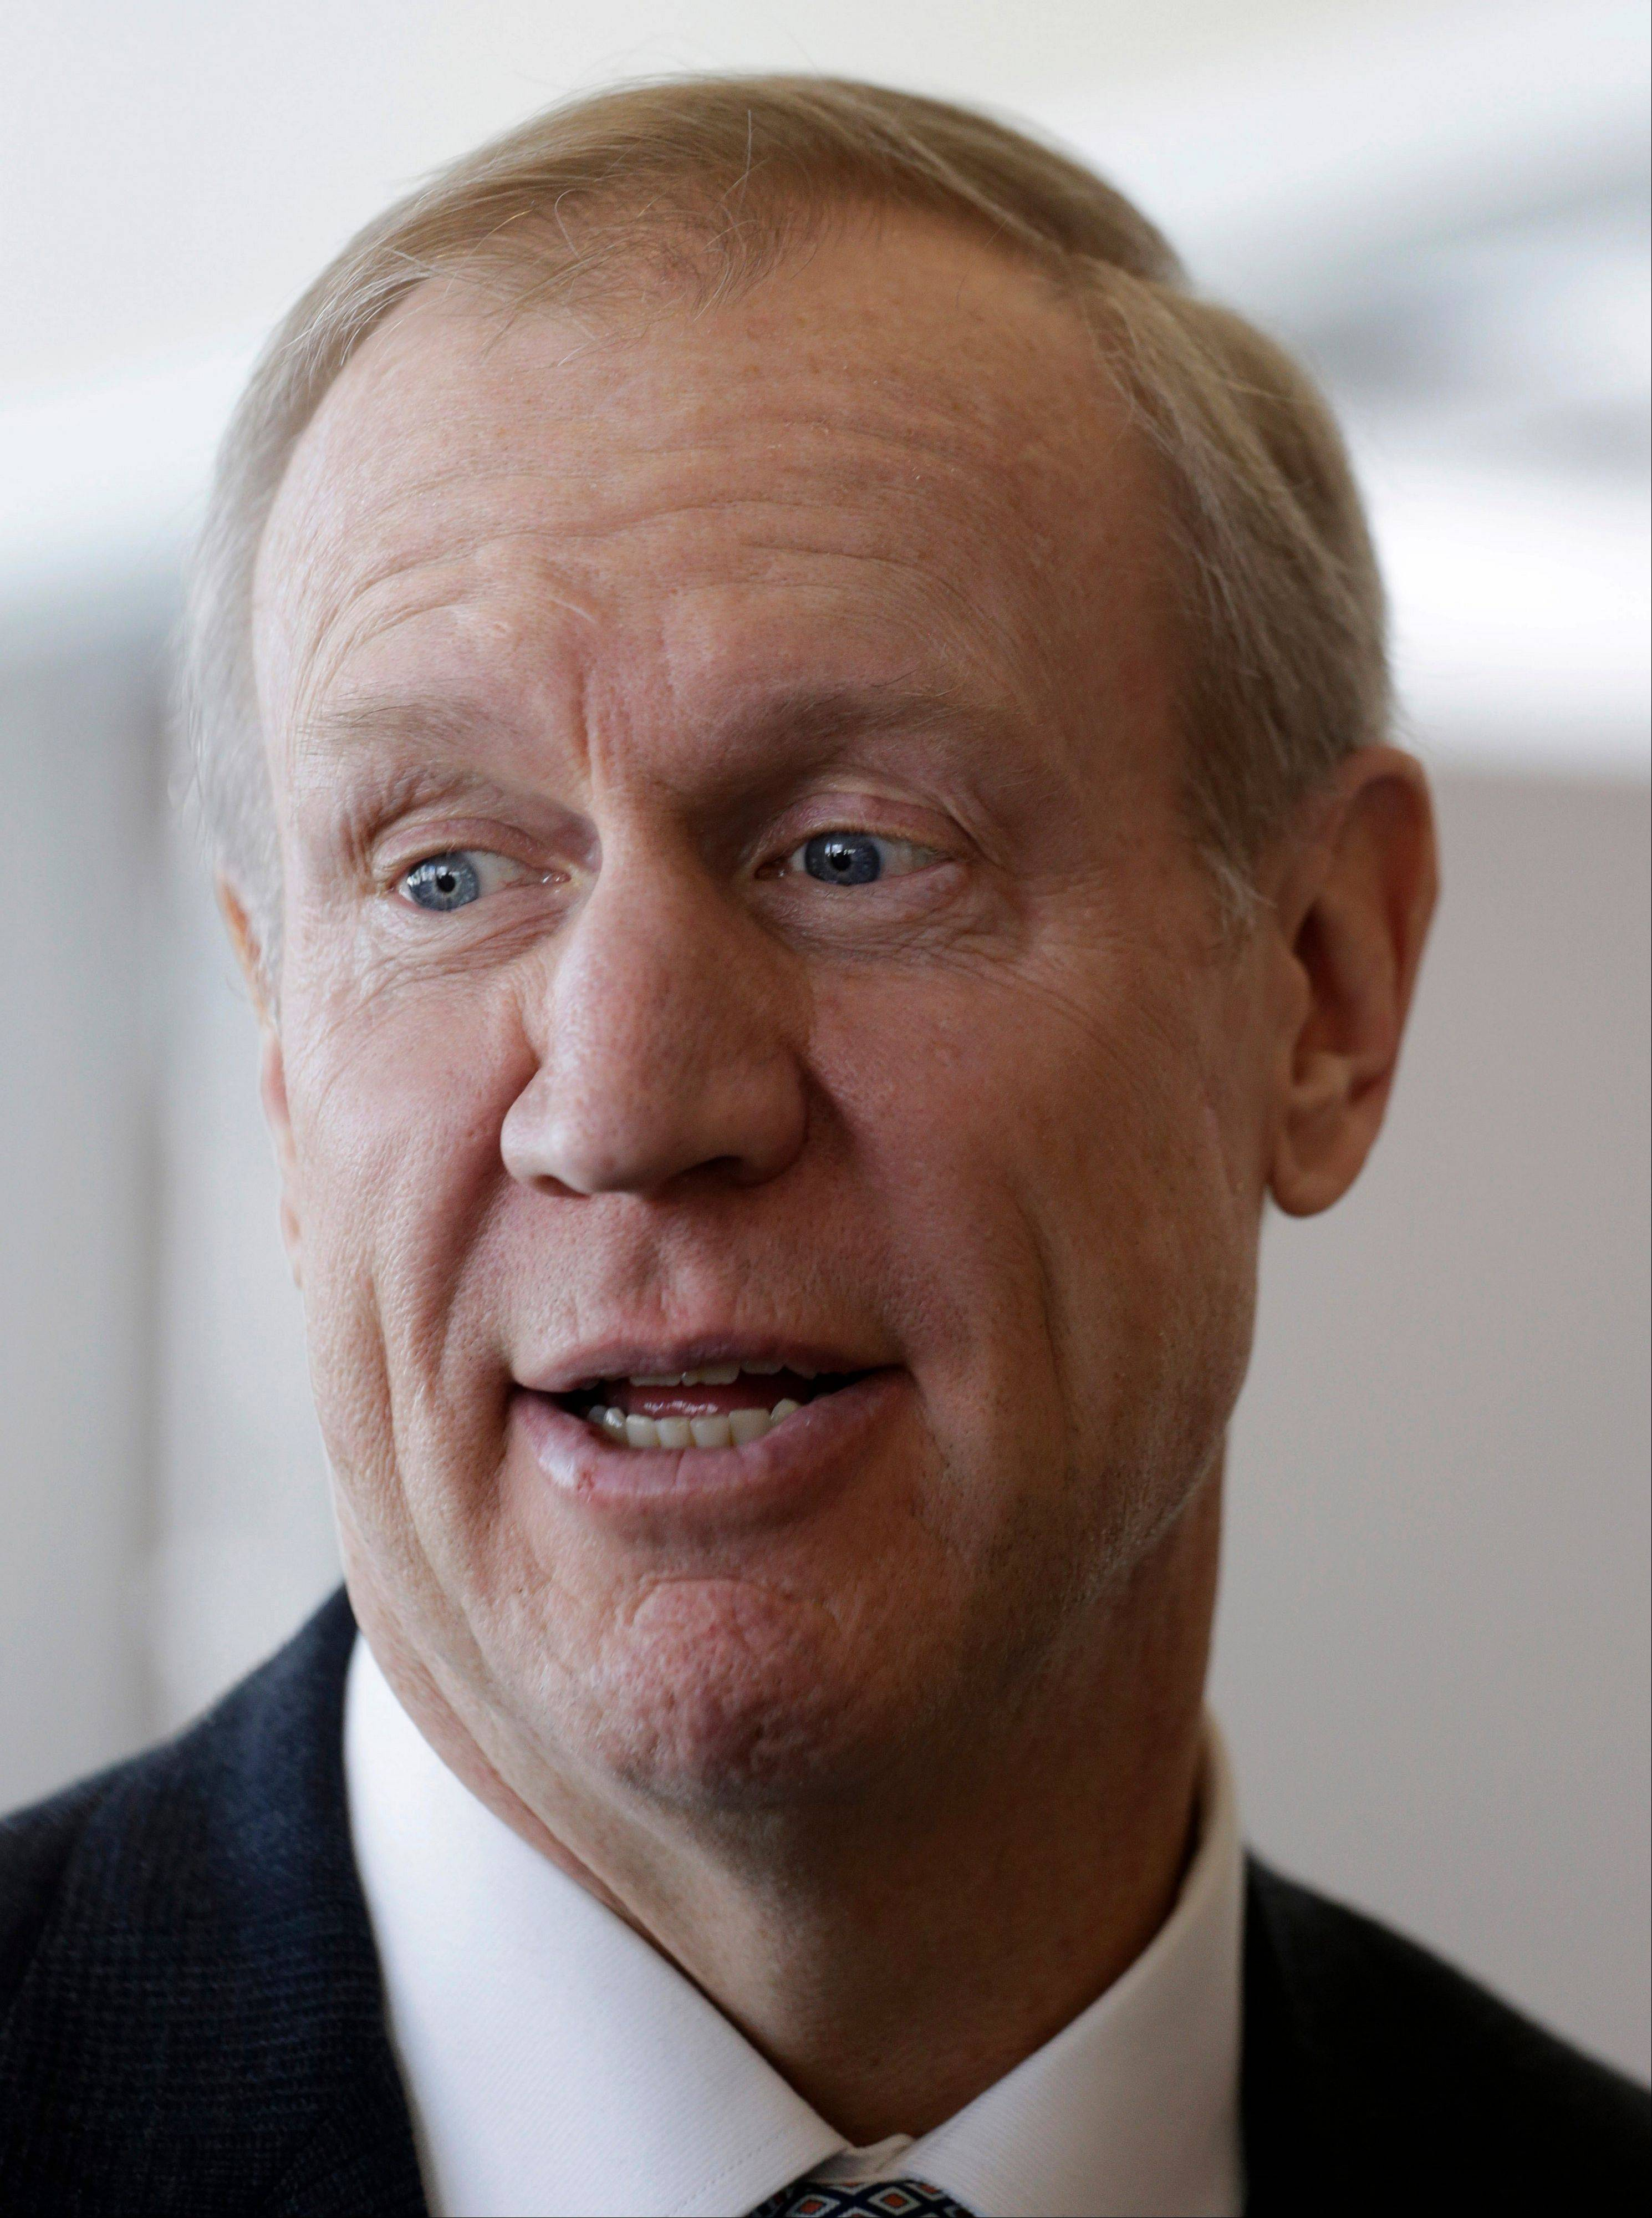 GOP's Rauner says he's running for Illinois governor